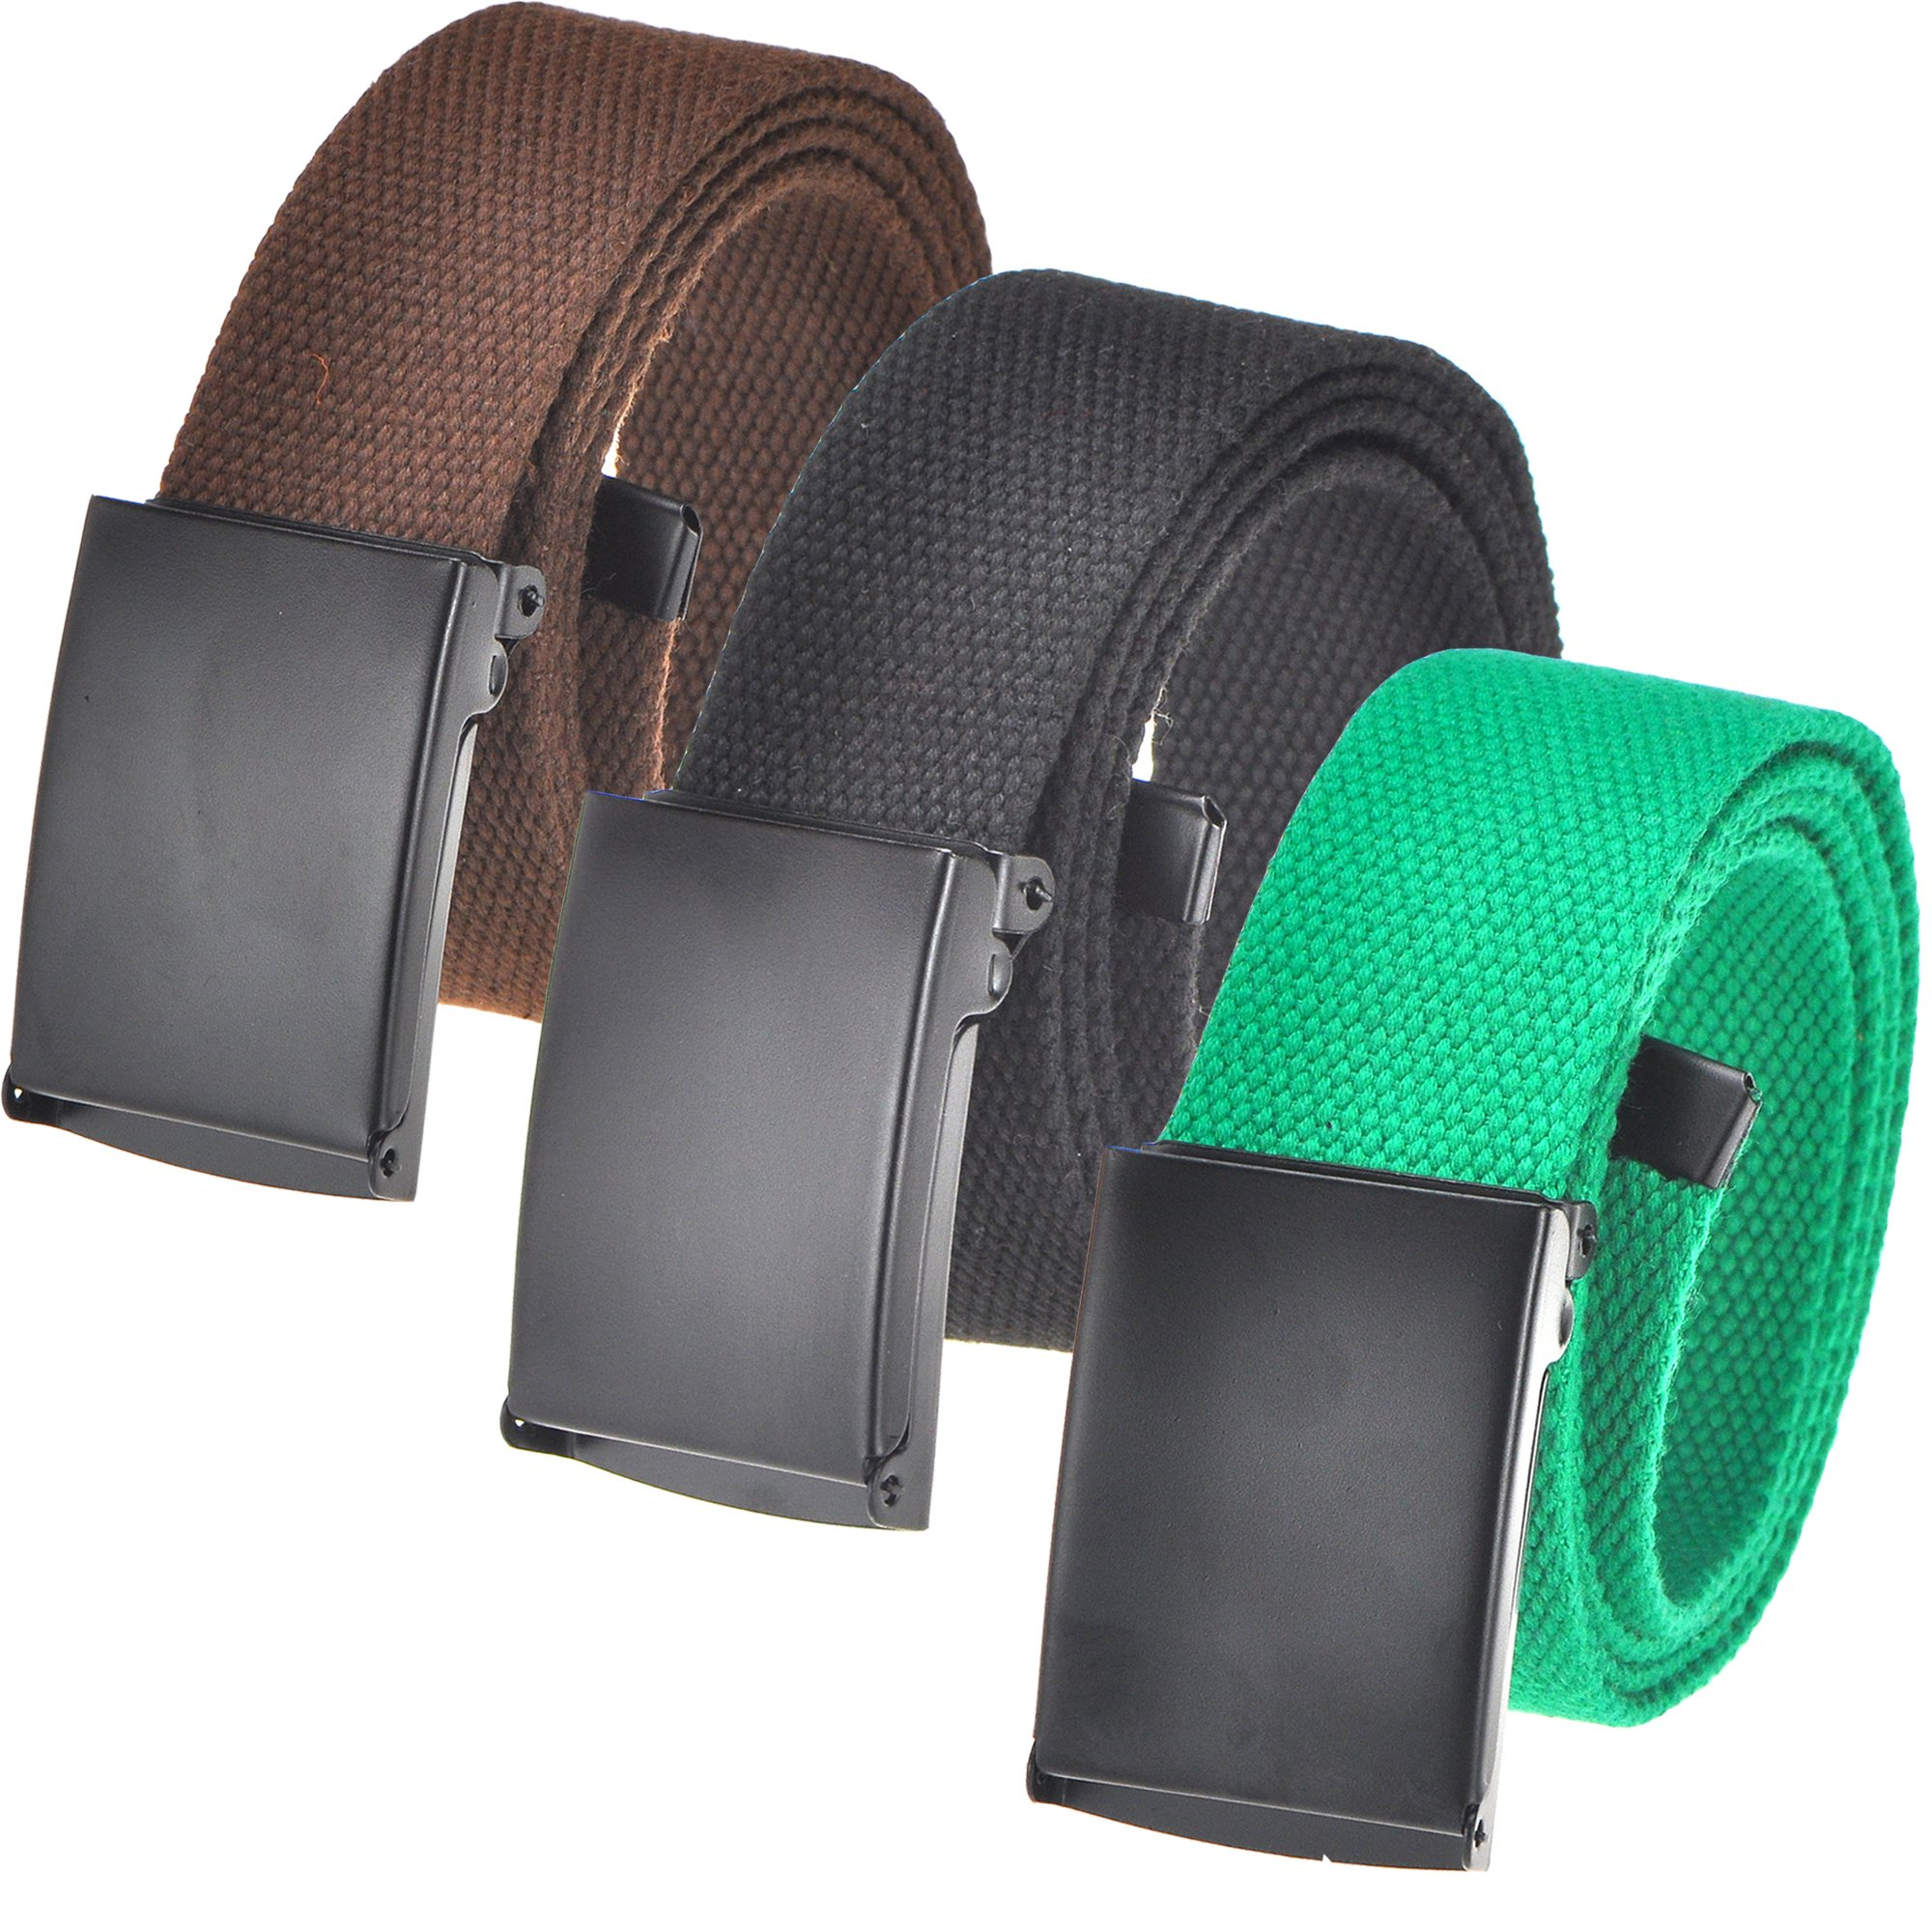 Cut To Fit Canvas Web Belt Size Up to 52'' with Flip-Top Solid Black Military Buckle (16 Color and Combo Pack Options) (3 Pack Black/Brown/Green)